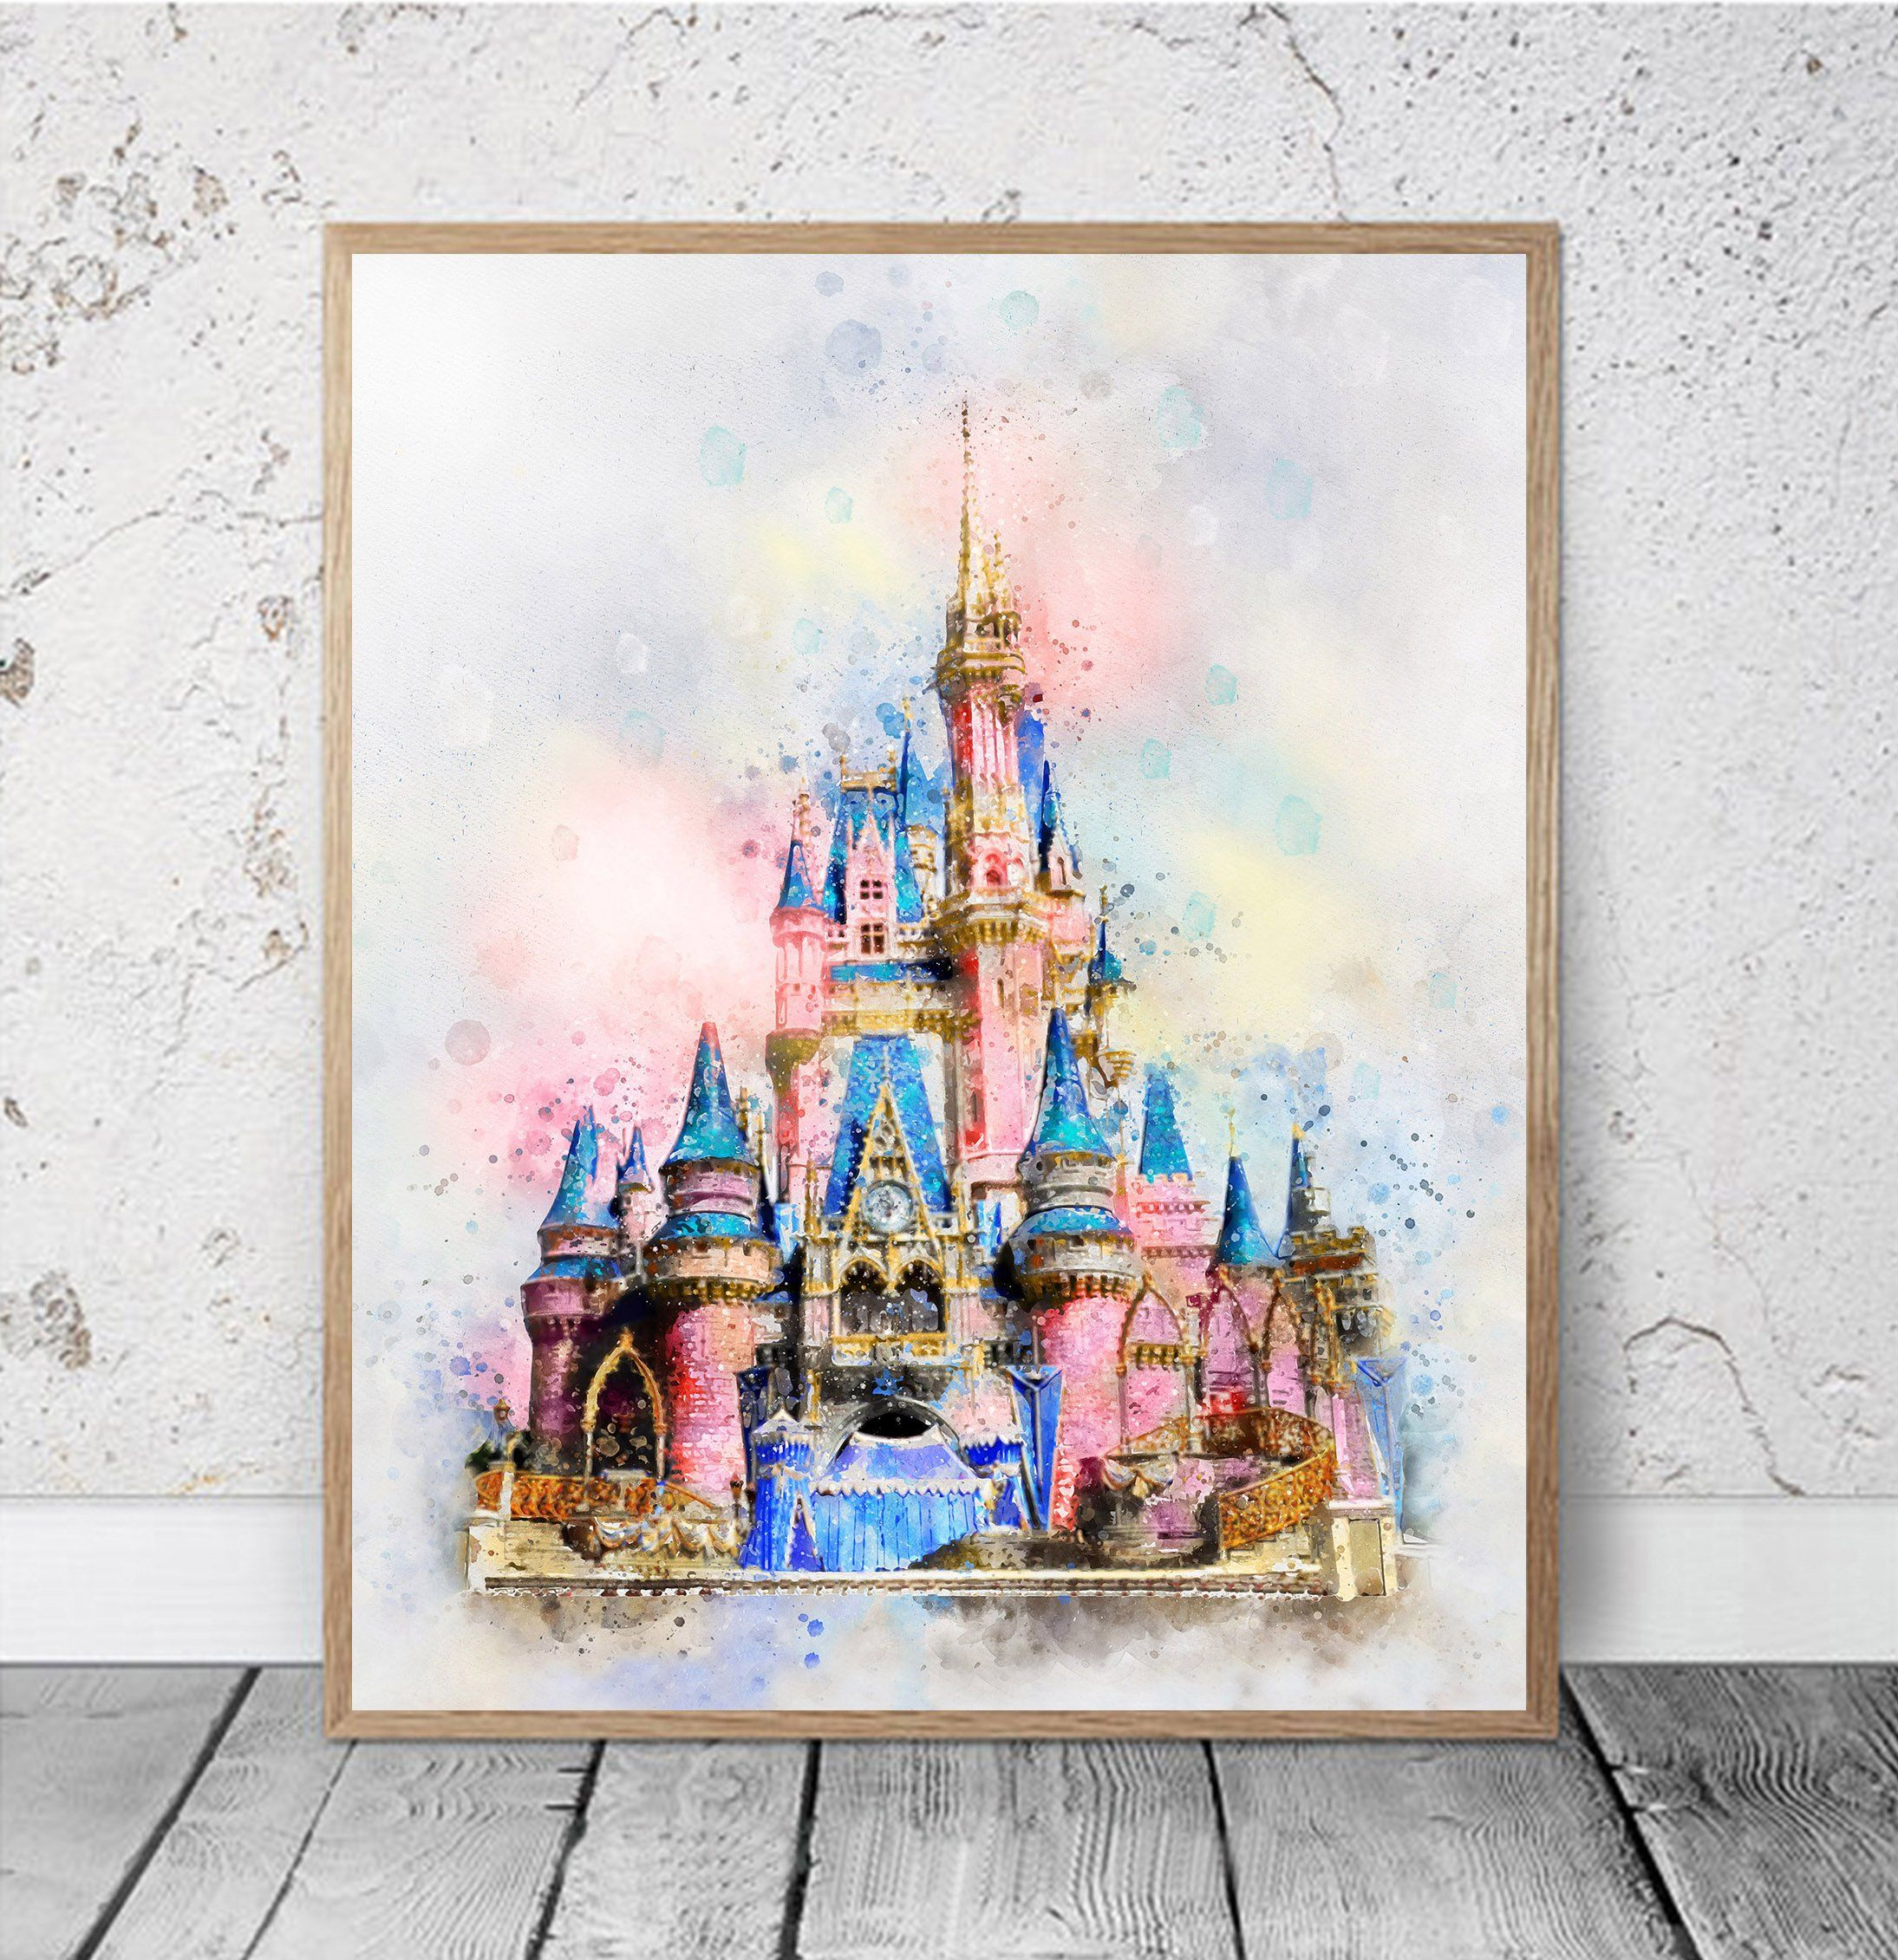 Canvas Oil Painting for Girls Room Decor HD Print Disney Castle Wall Art 12x16